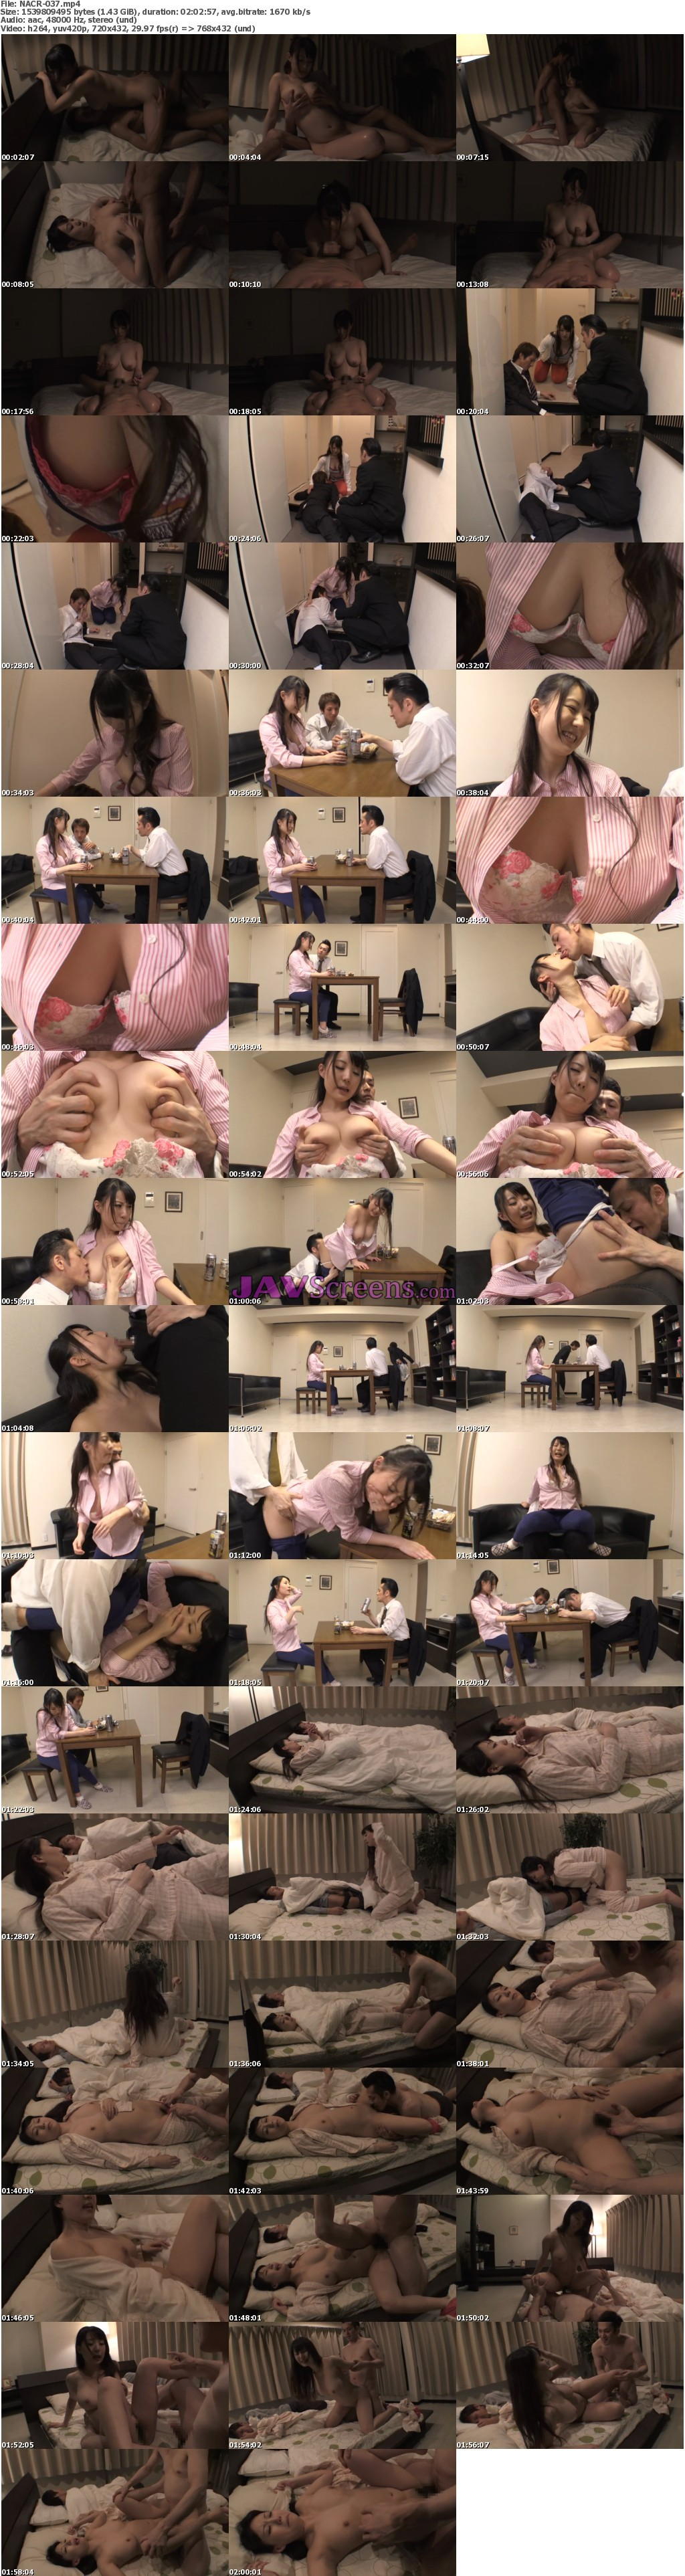 NACR-037.jpg - JAV Screenshot